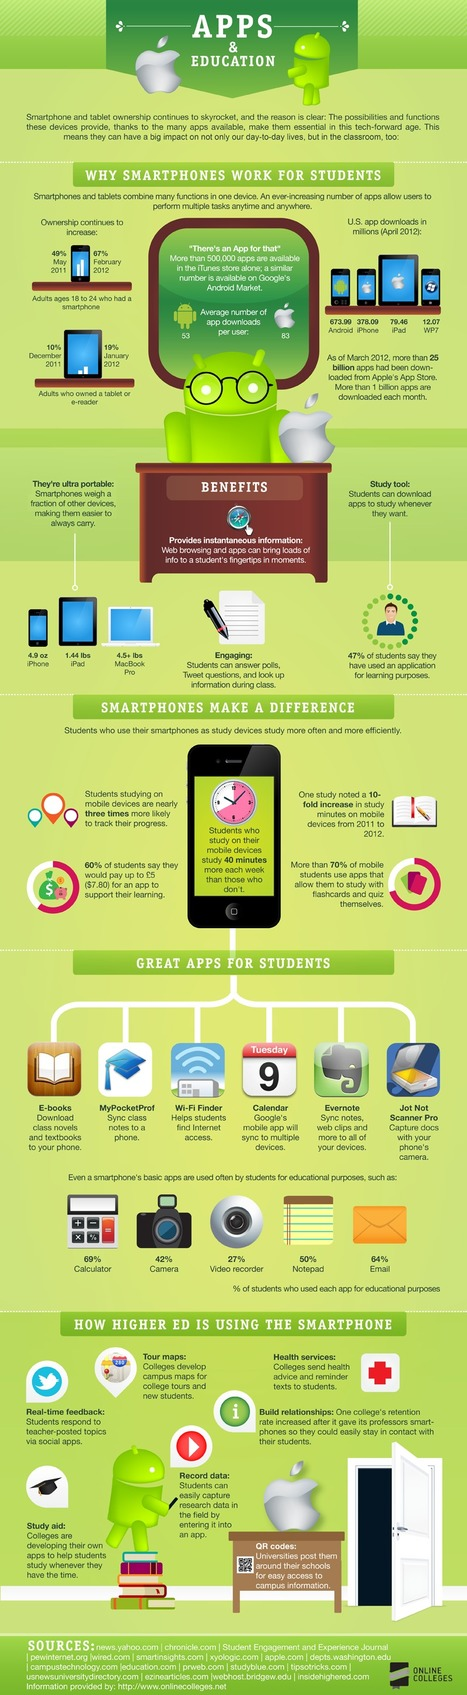 Infographic: Apps and Education | ICT Education | Scoop.it